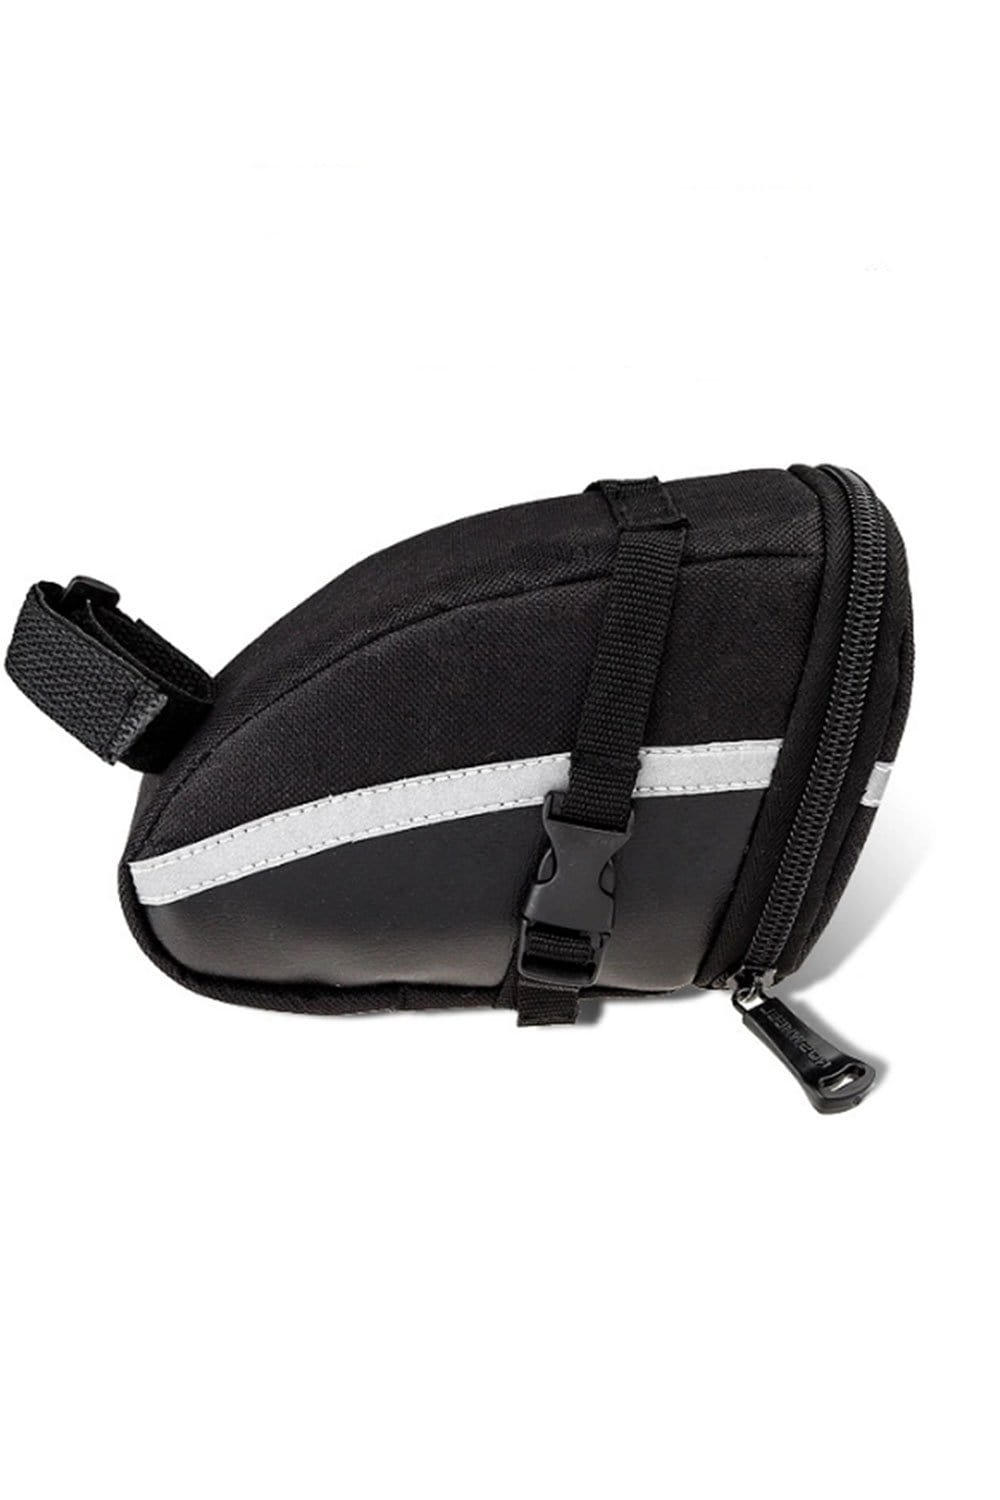 Bike Reflective Bag, Reflective Bicycle Rear Seat Storage Bag Bike Bag Balck MIER